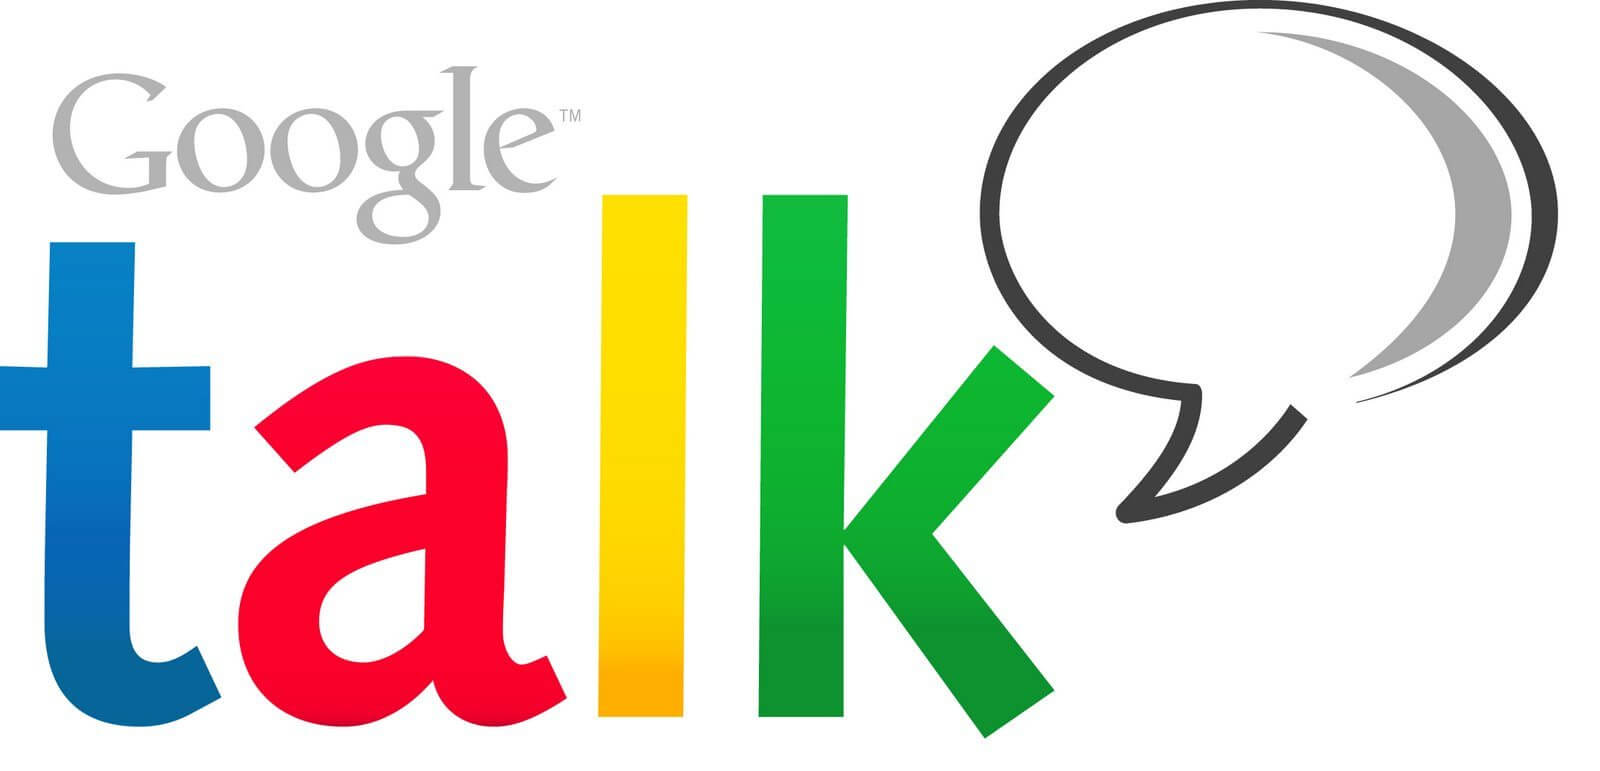 google talk gtalk logo